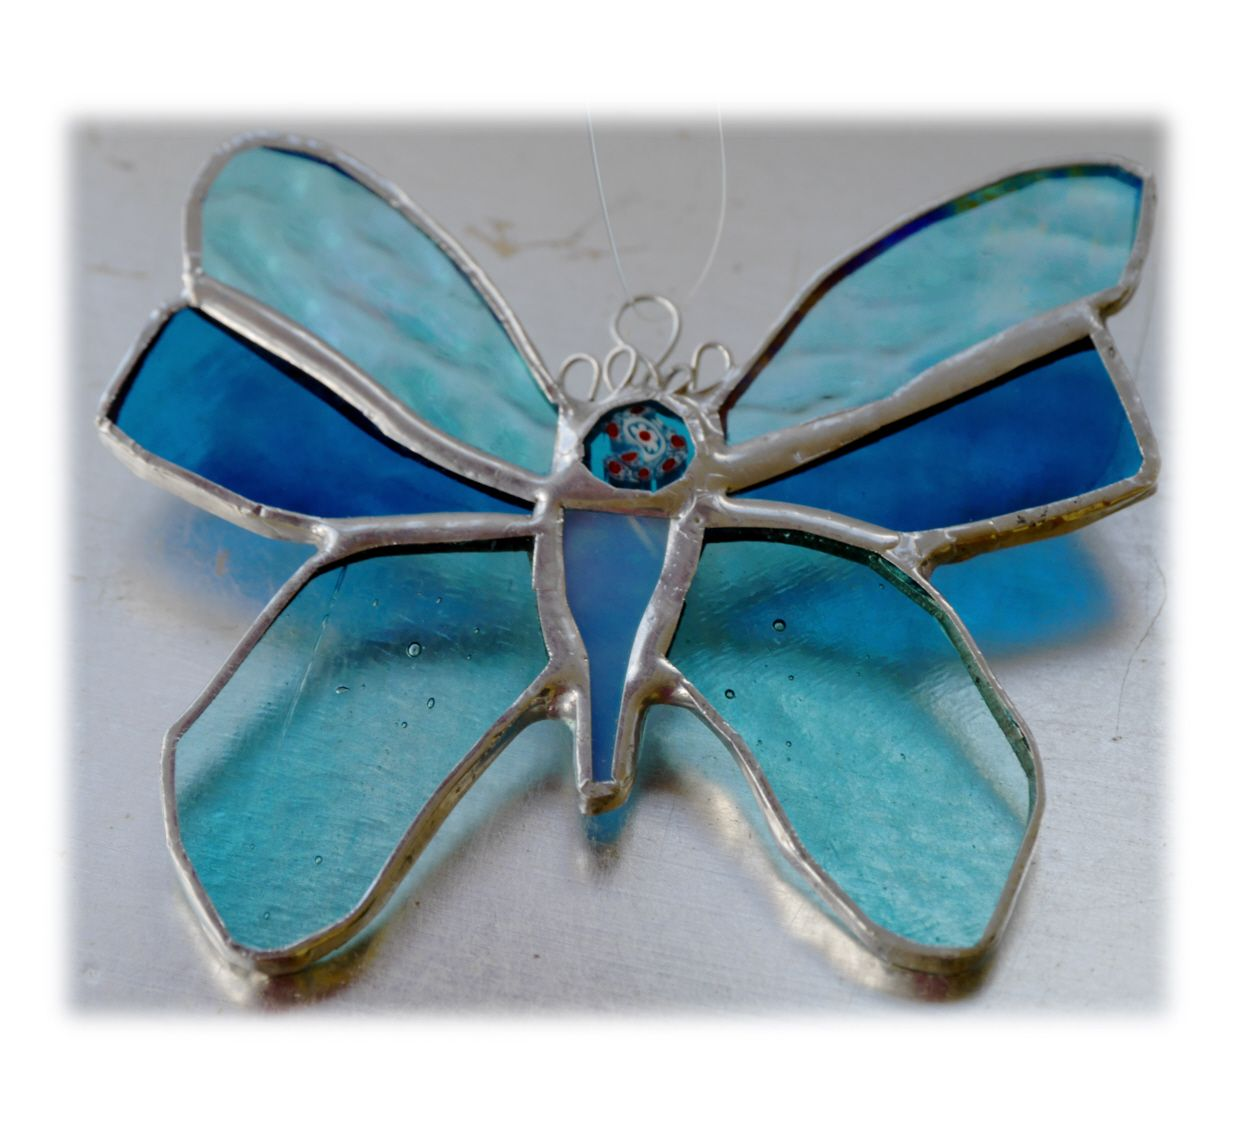 Butterfly 11cm 061 Turquoise #1907 FREE 9.00